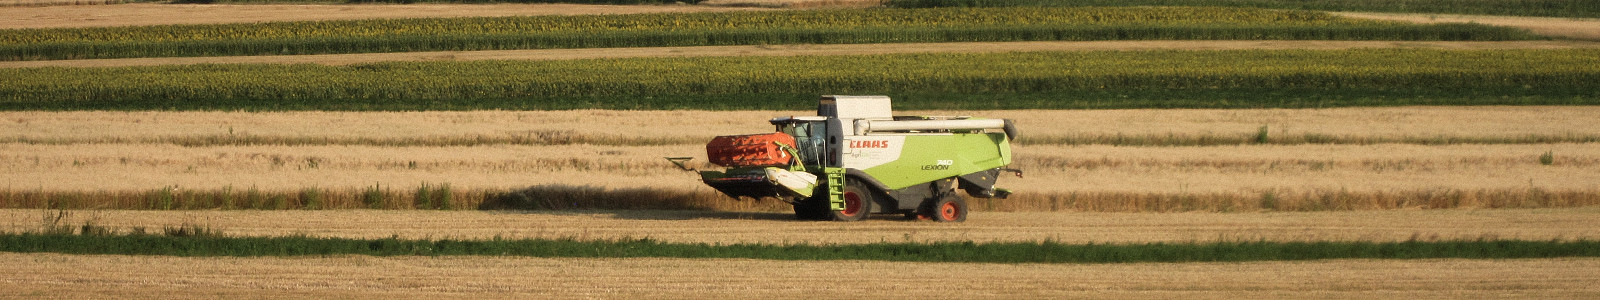 Harvest at ACS Landwirtschafts AG in Romania